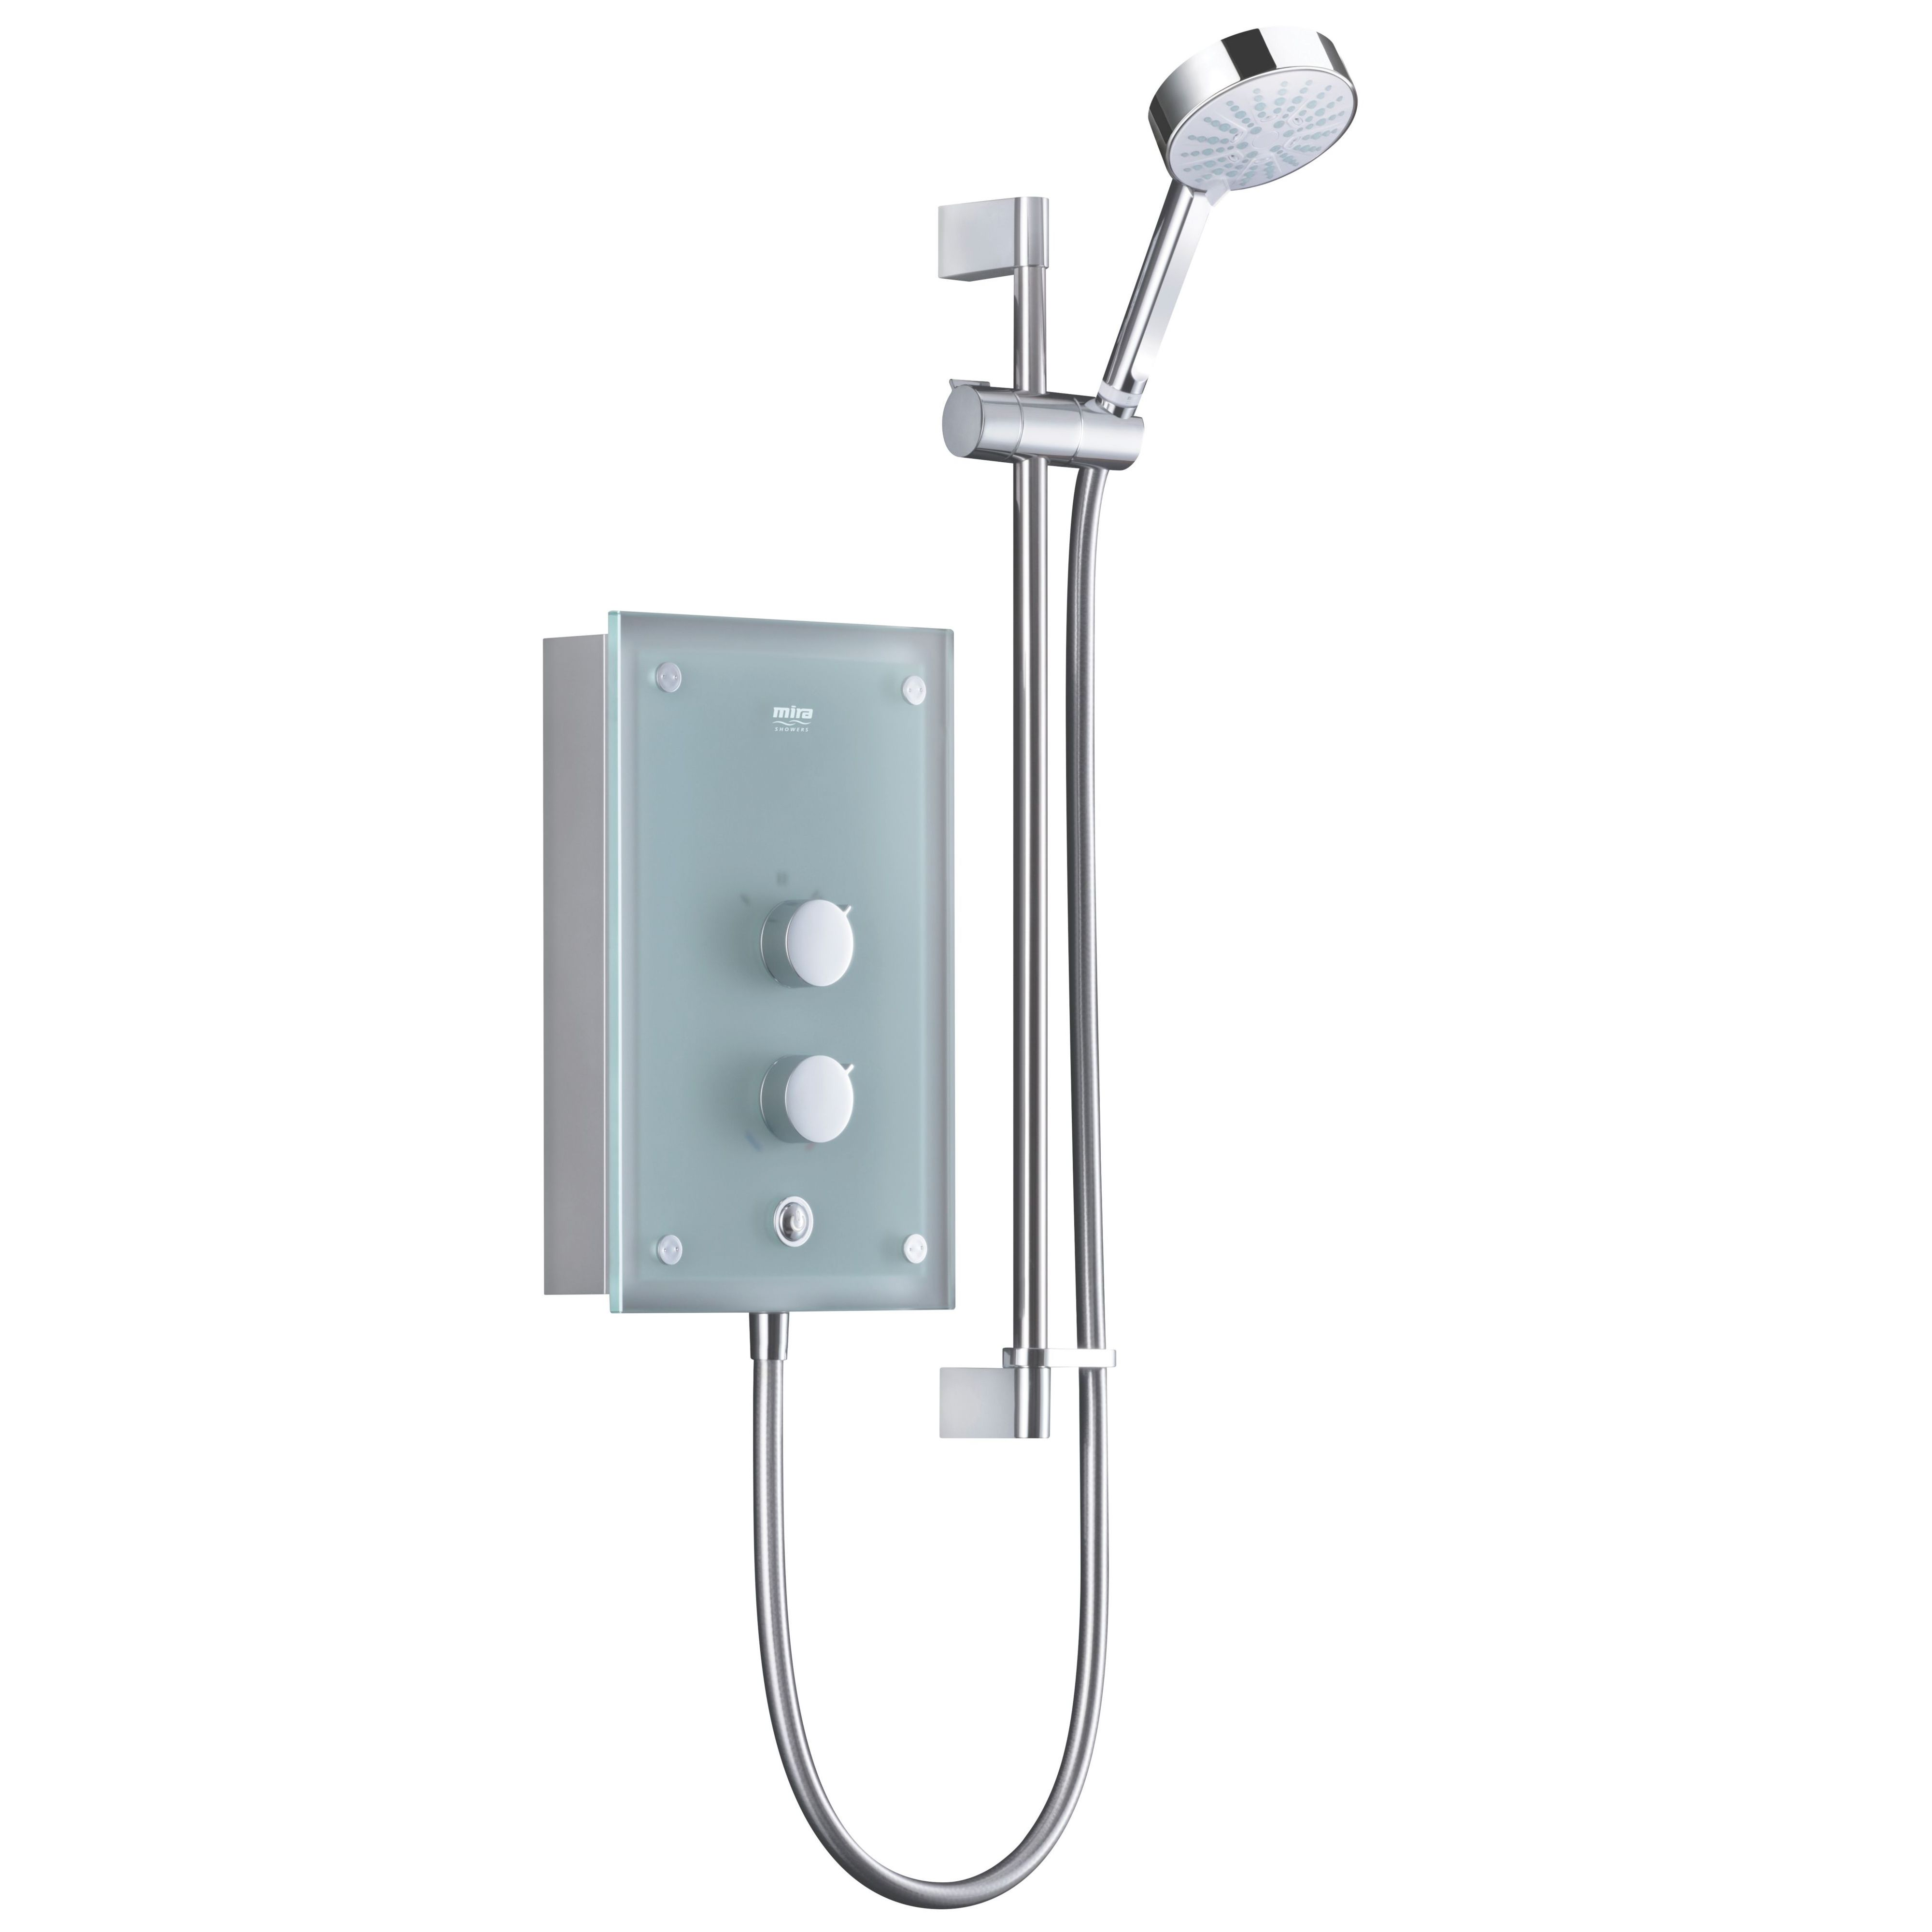 Mira Azora Frosted glass Electric shower, 9.8 kW | B&Q